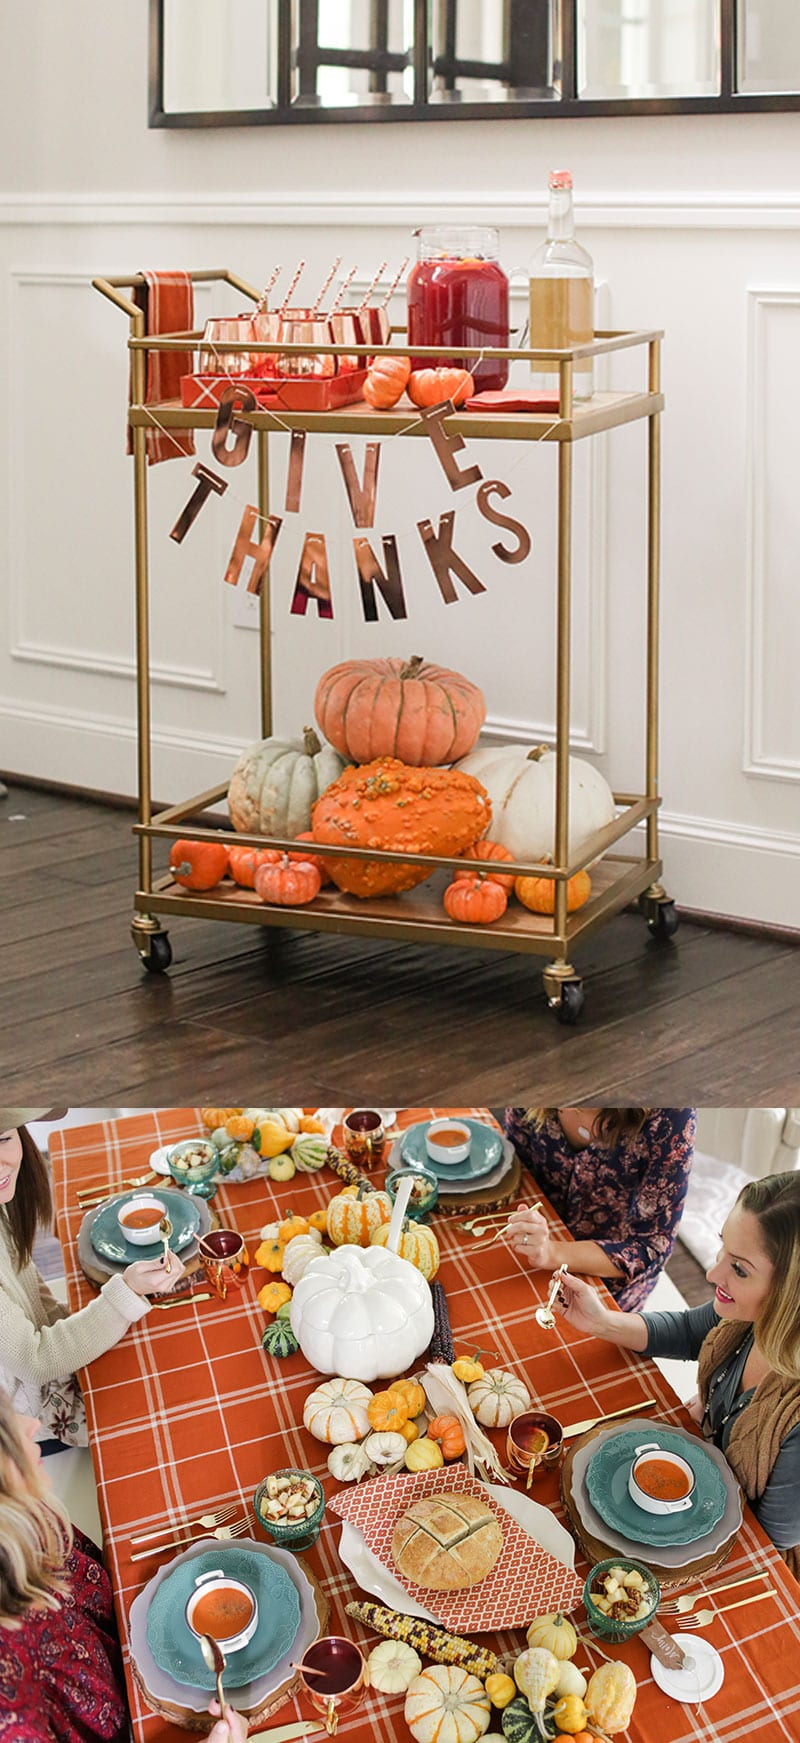 Give Thanks: Fall Party, Bar Cart, & more!